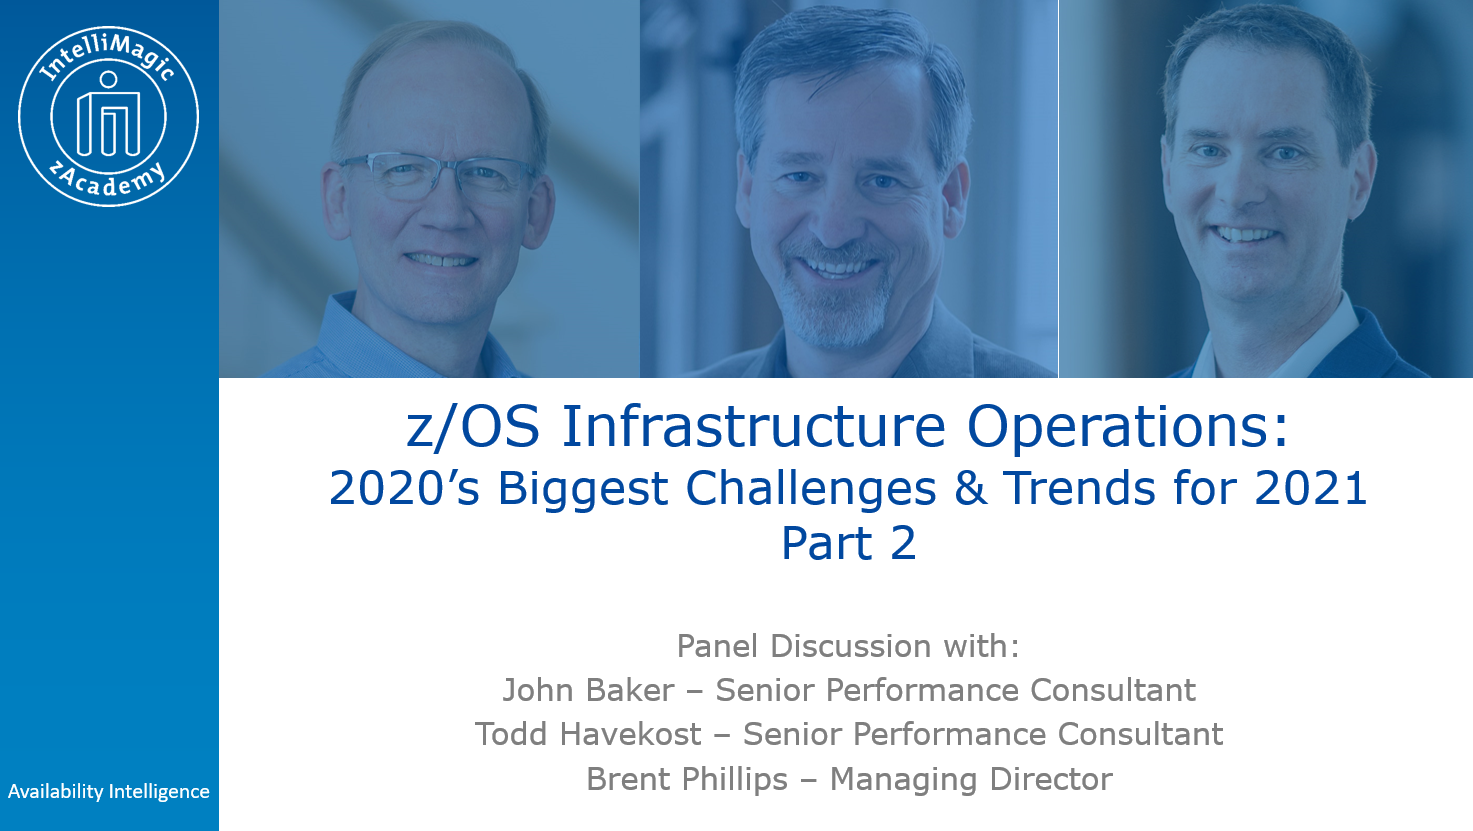 z/OS Infrastructure Operations: 2020's Biggest Challenges & Trends for 2021 Part 2